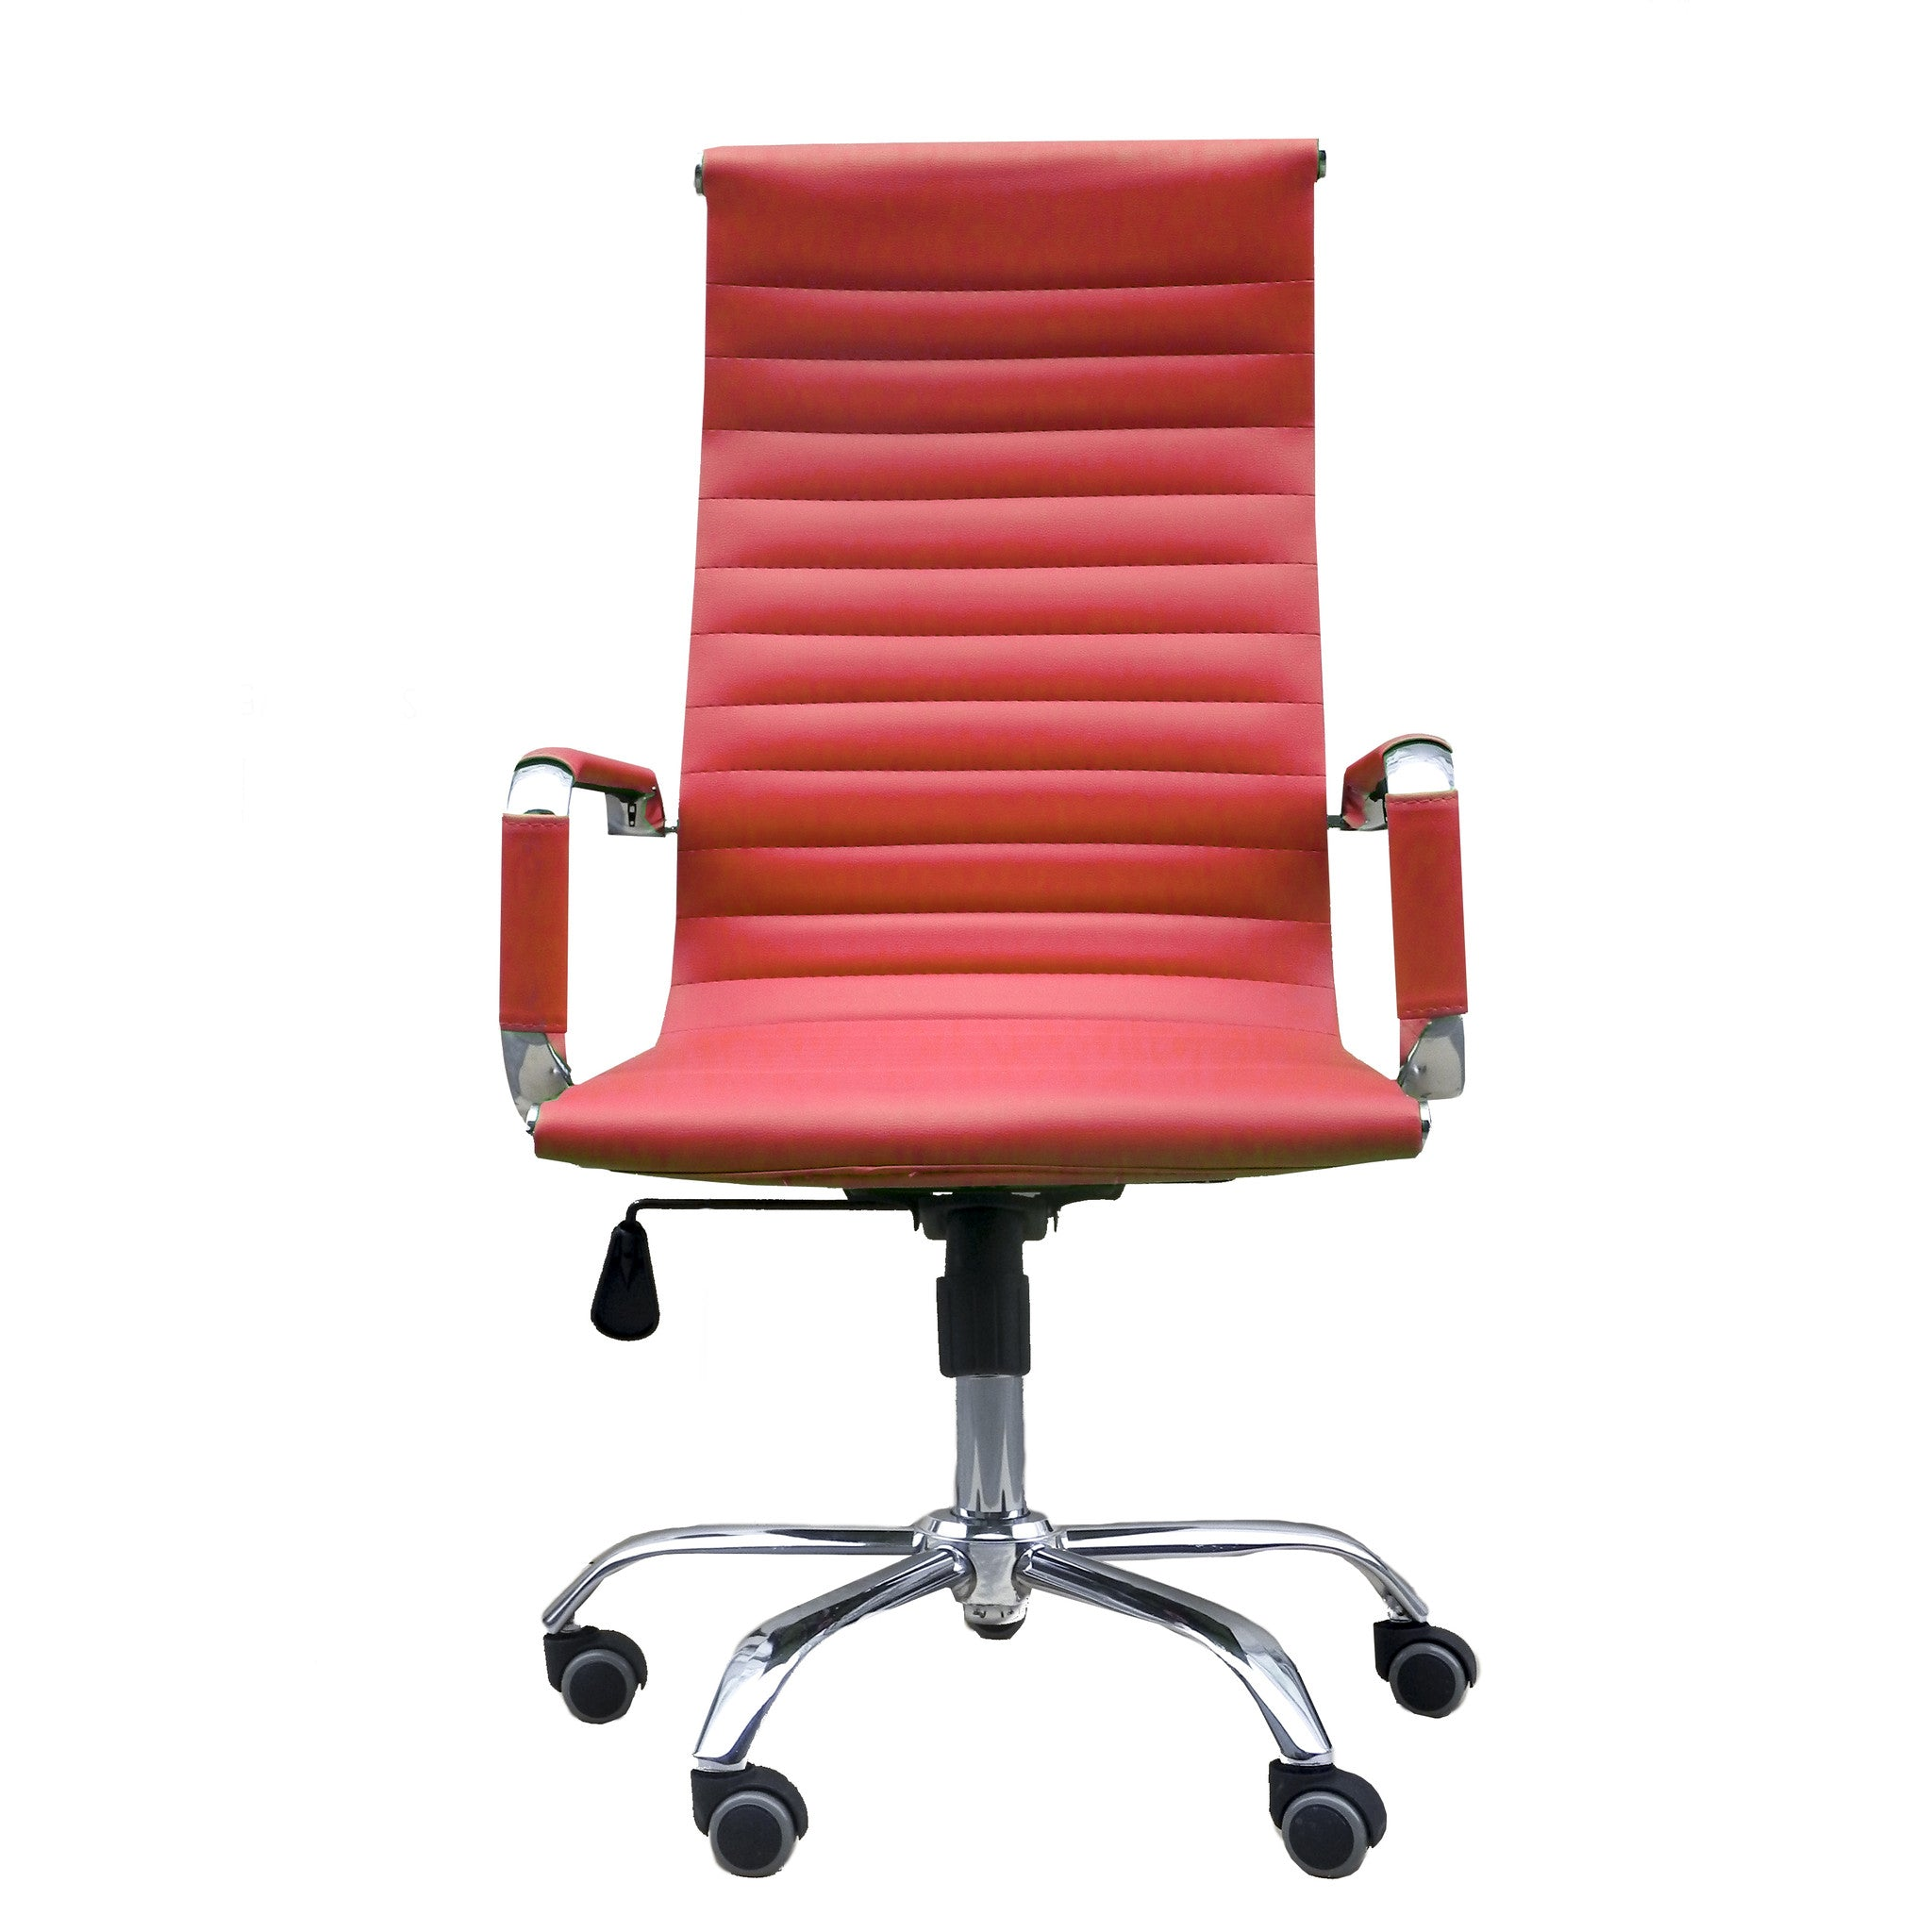 outstanding chairs executive office chair l org permalink image desk red reclining and top